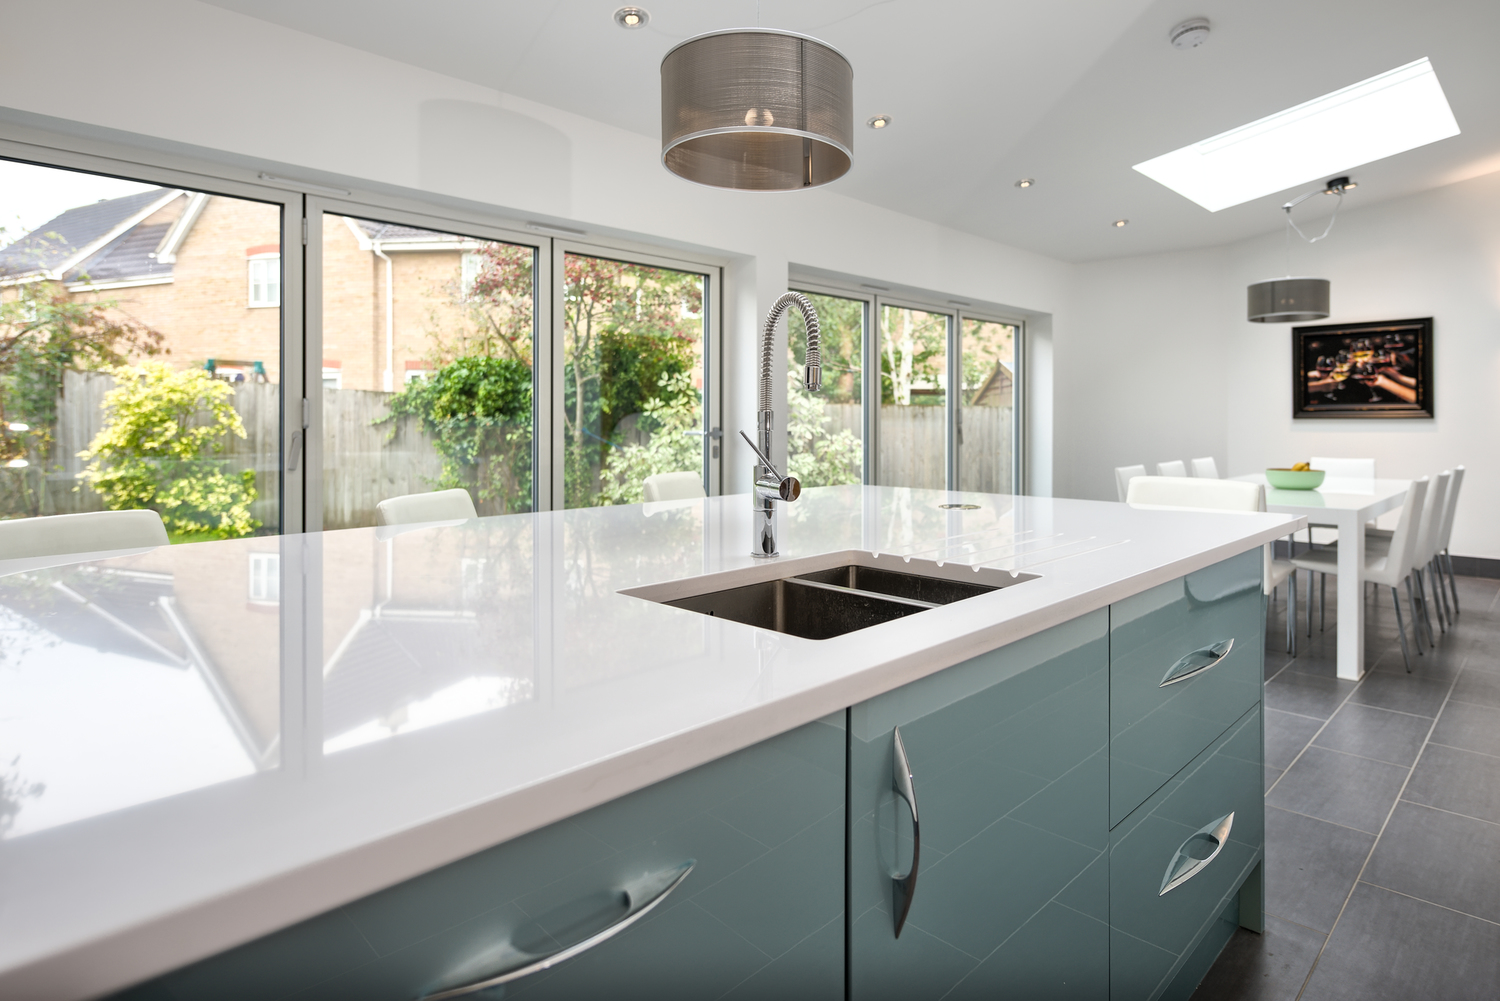 Island breakfast table with drawers of a lighting house extension by Harvey Norman Architects Cambridge